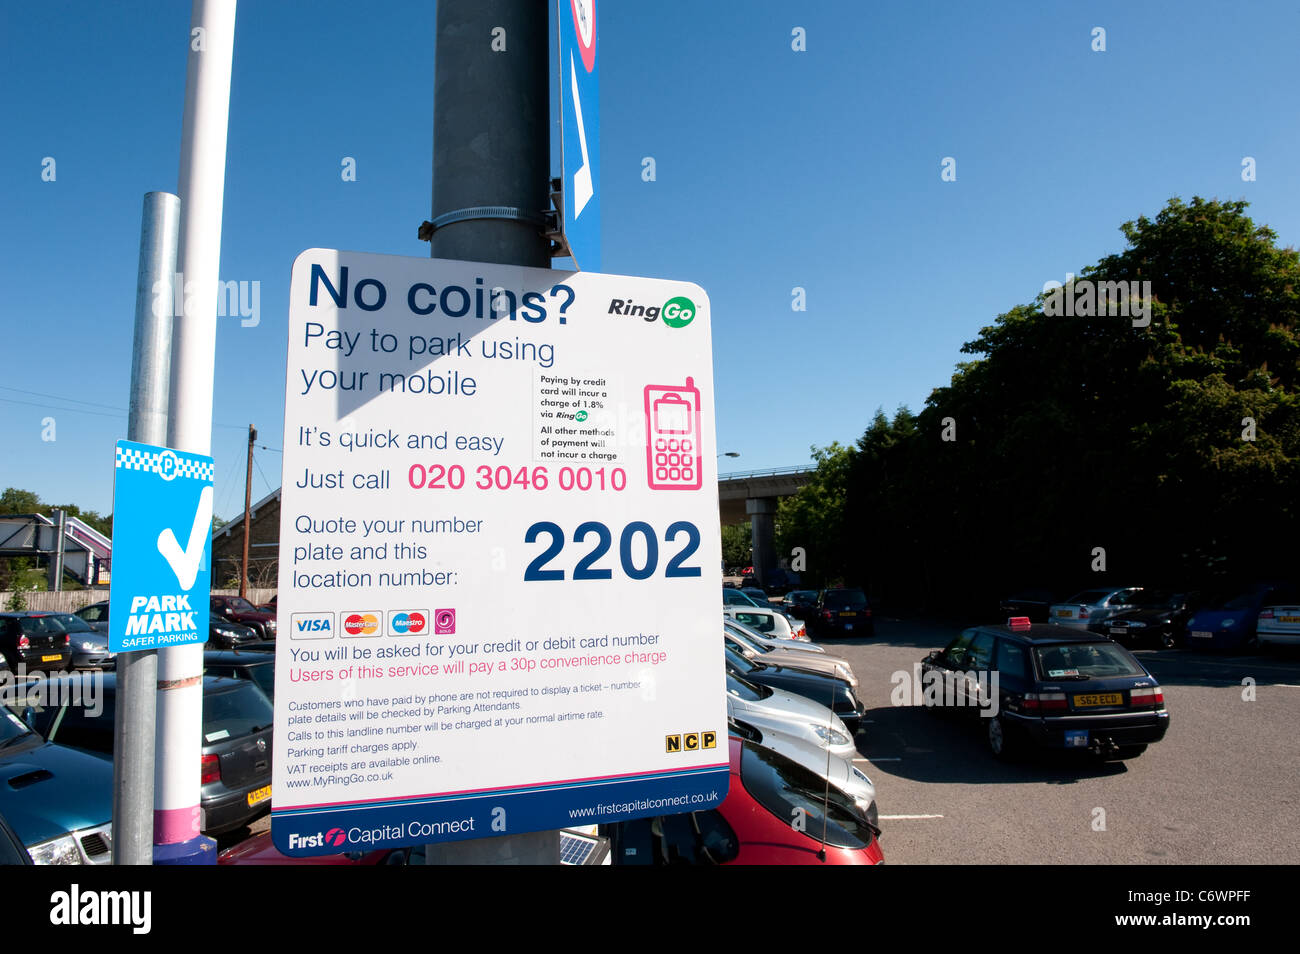 Sign in a busy railway station car park inviting visitors to pay for parking with their mobile phones. - Stock Image